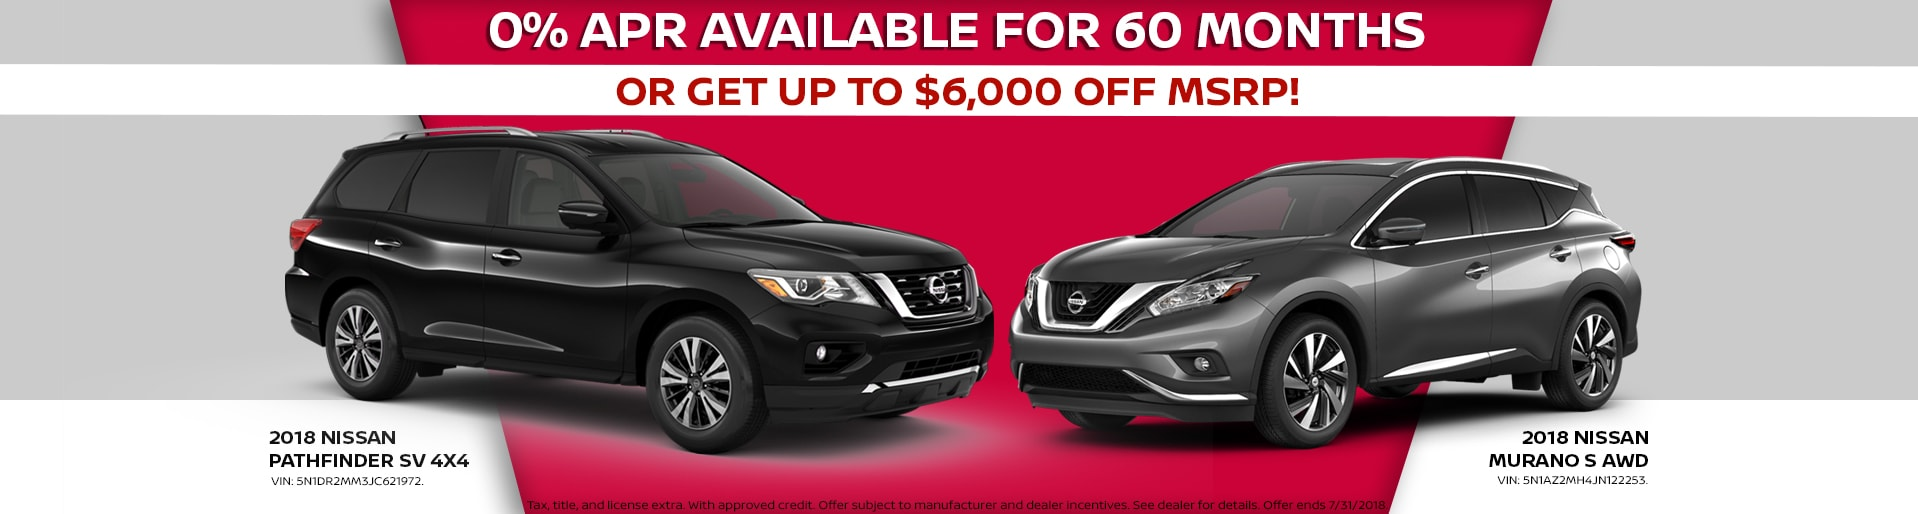 Council Bluffs Nissan Dealer near Omaha   New & Used Cars For Sale